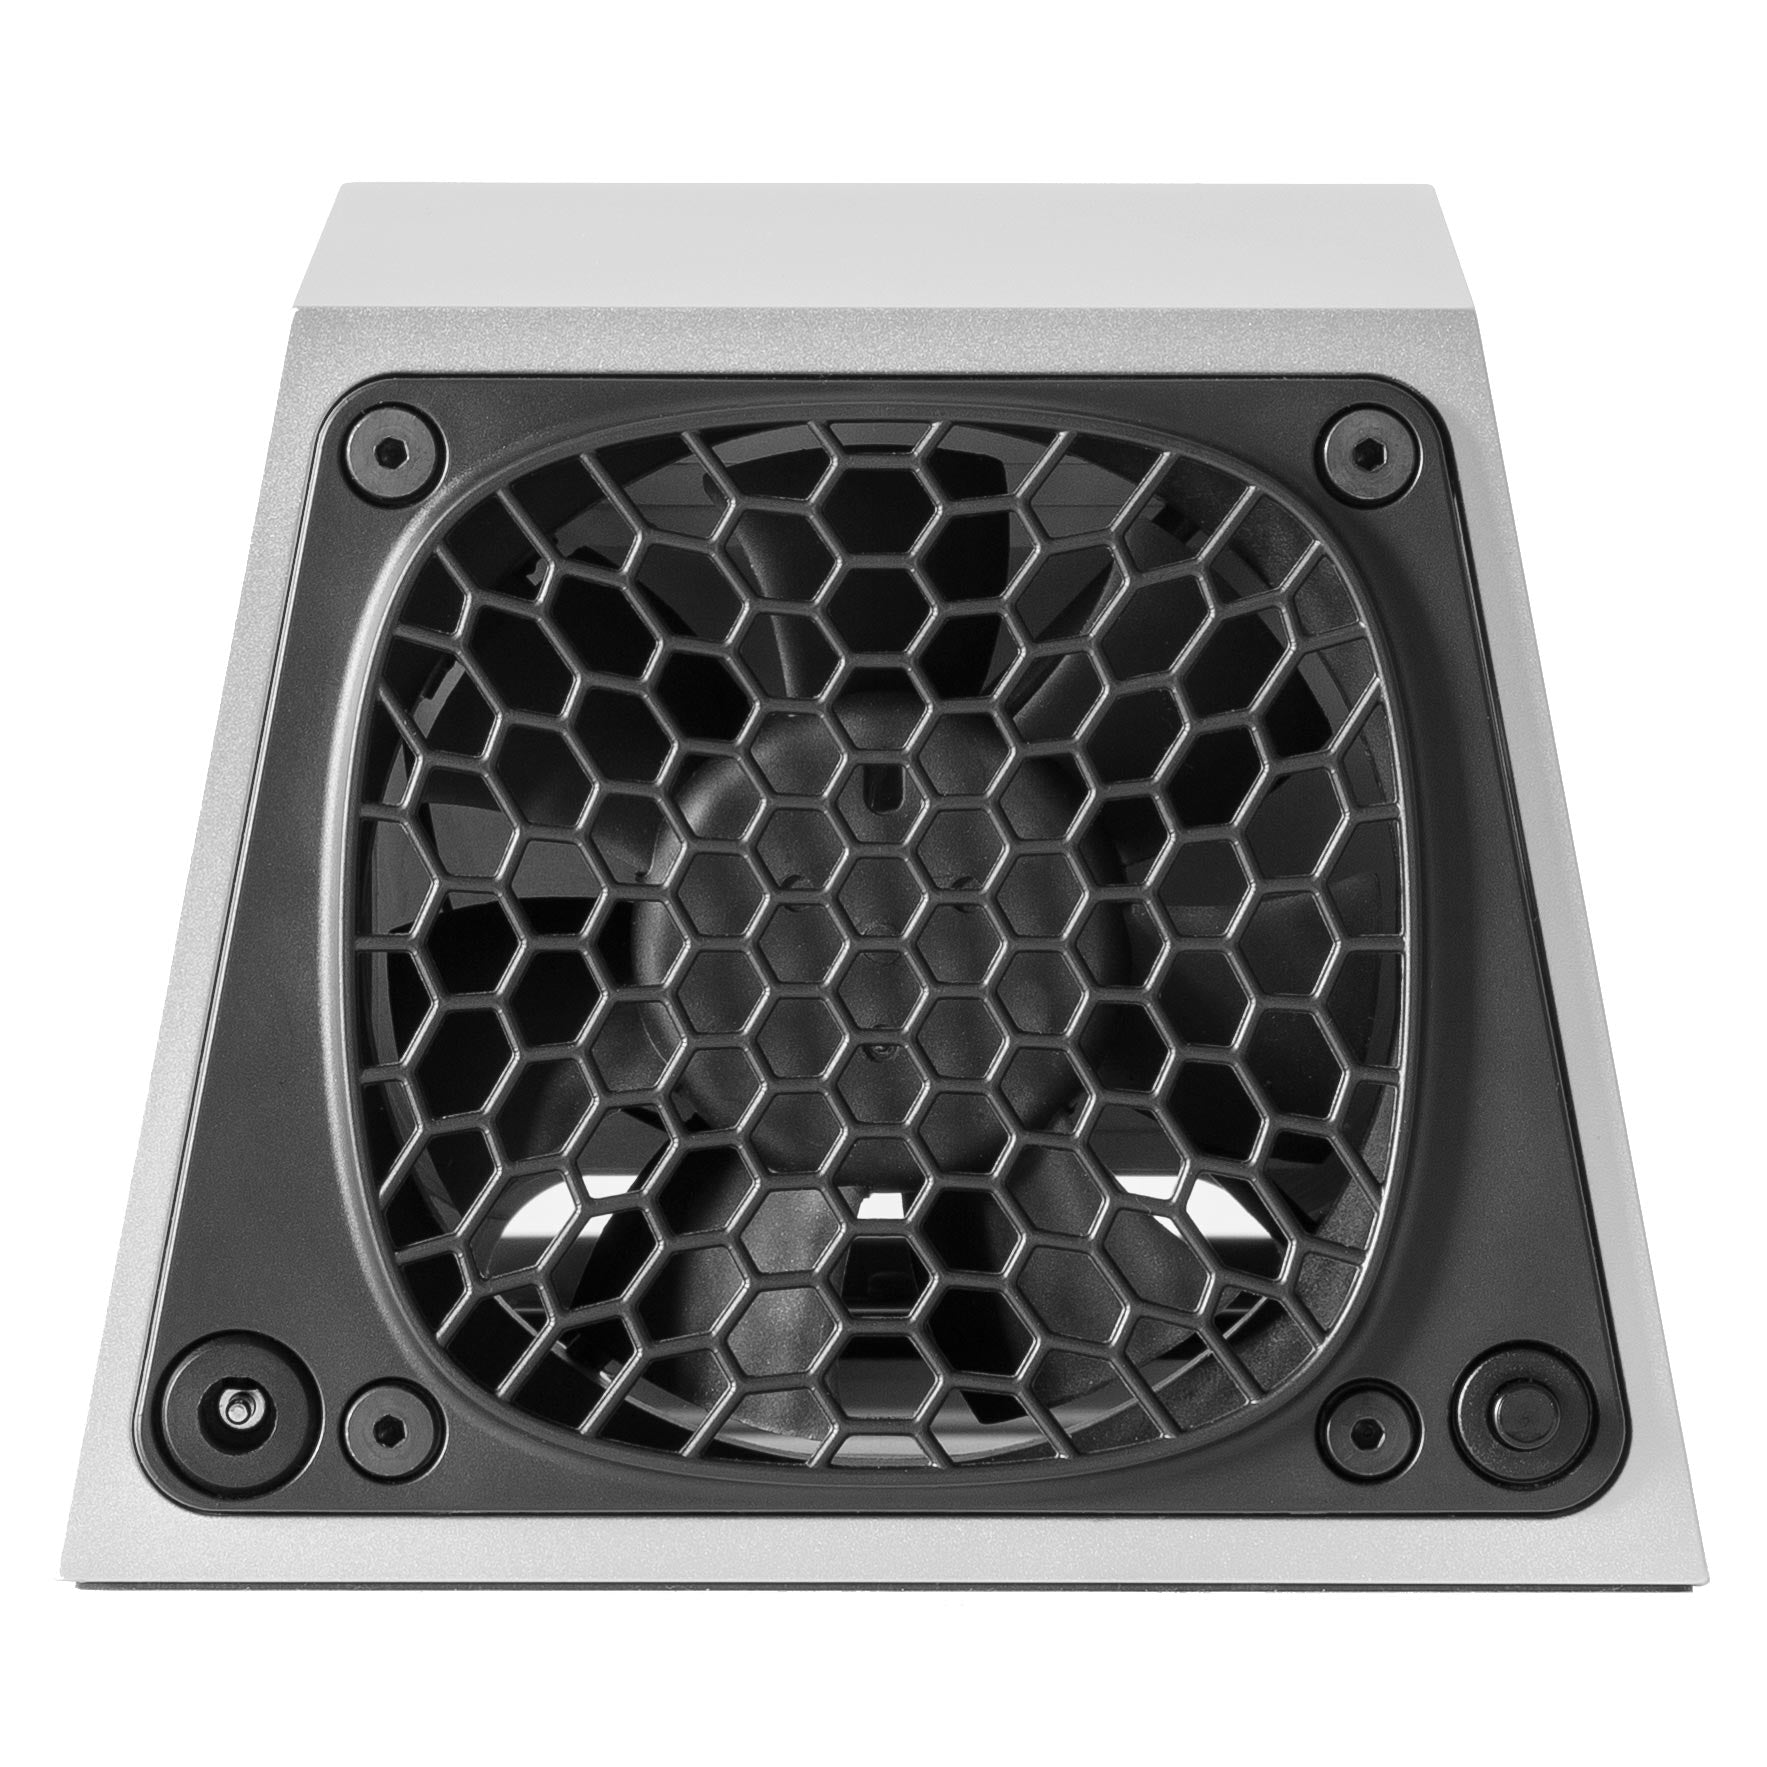 SVALT D Performance Cooling Dock back view